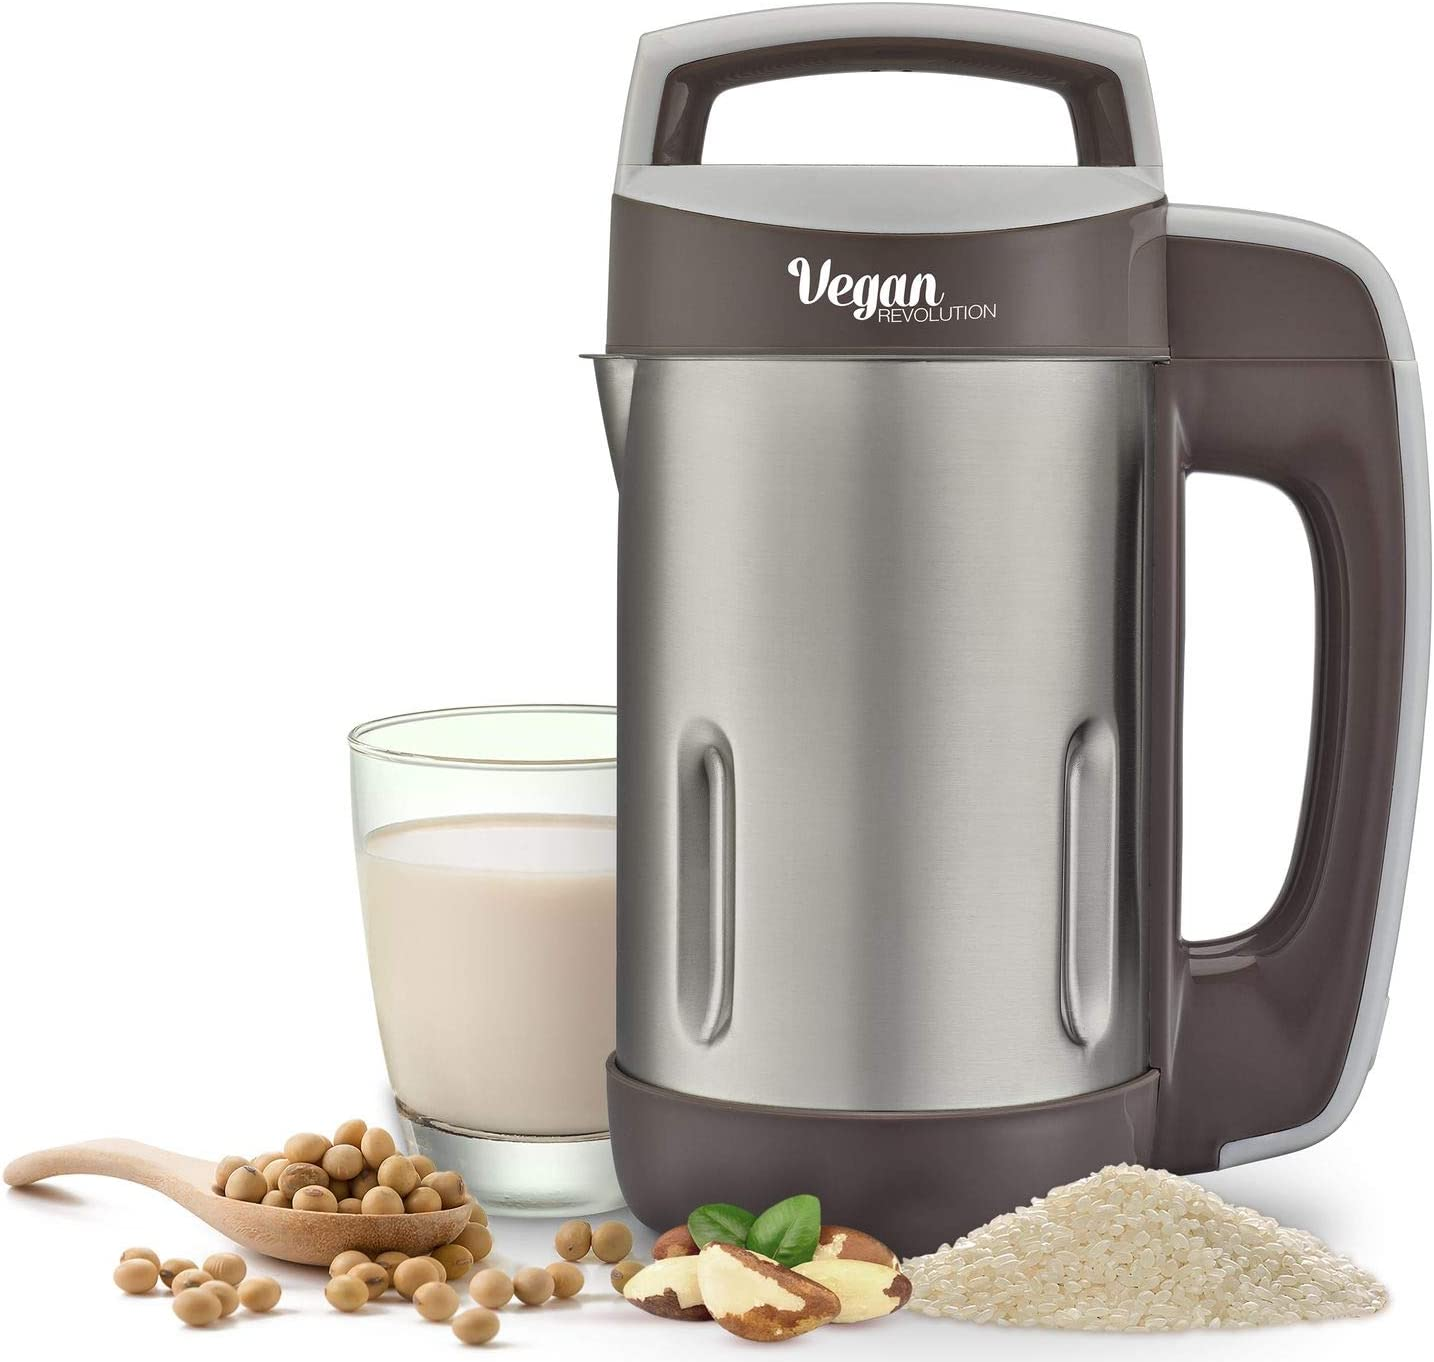 Vegan Milk Machine- Vegan Revolution make milk from grains seeds or nuts almonds soybean coconuts rice easy to use stainless steel blade